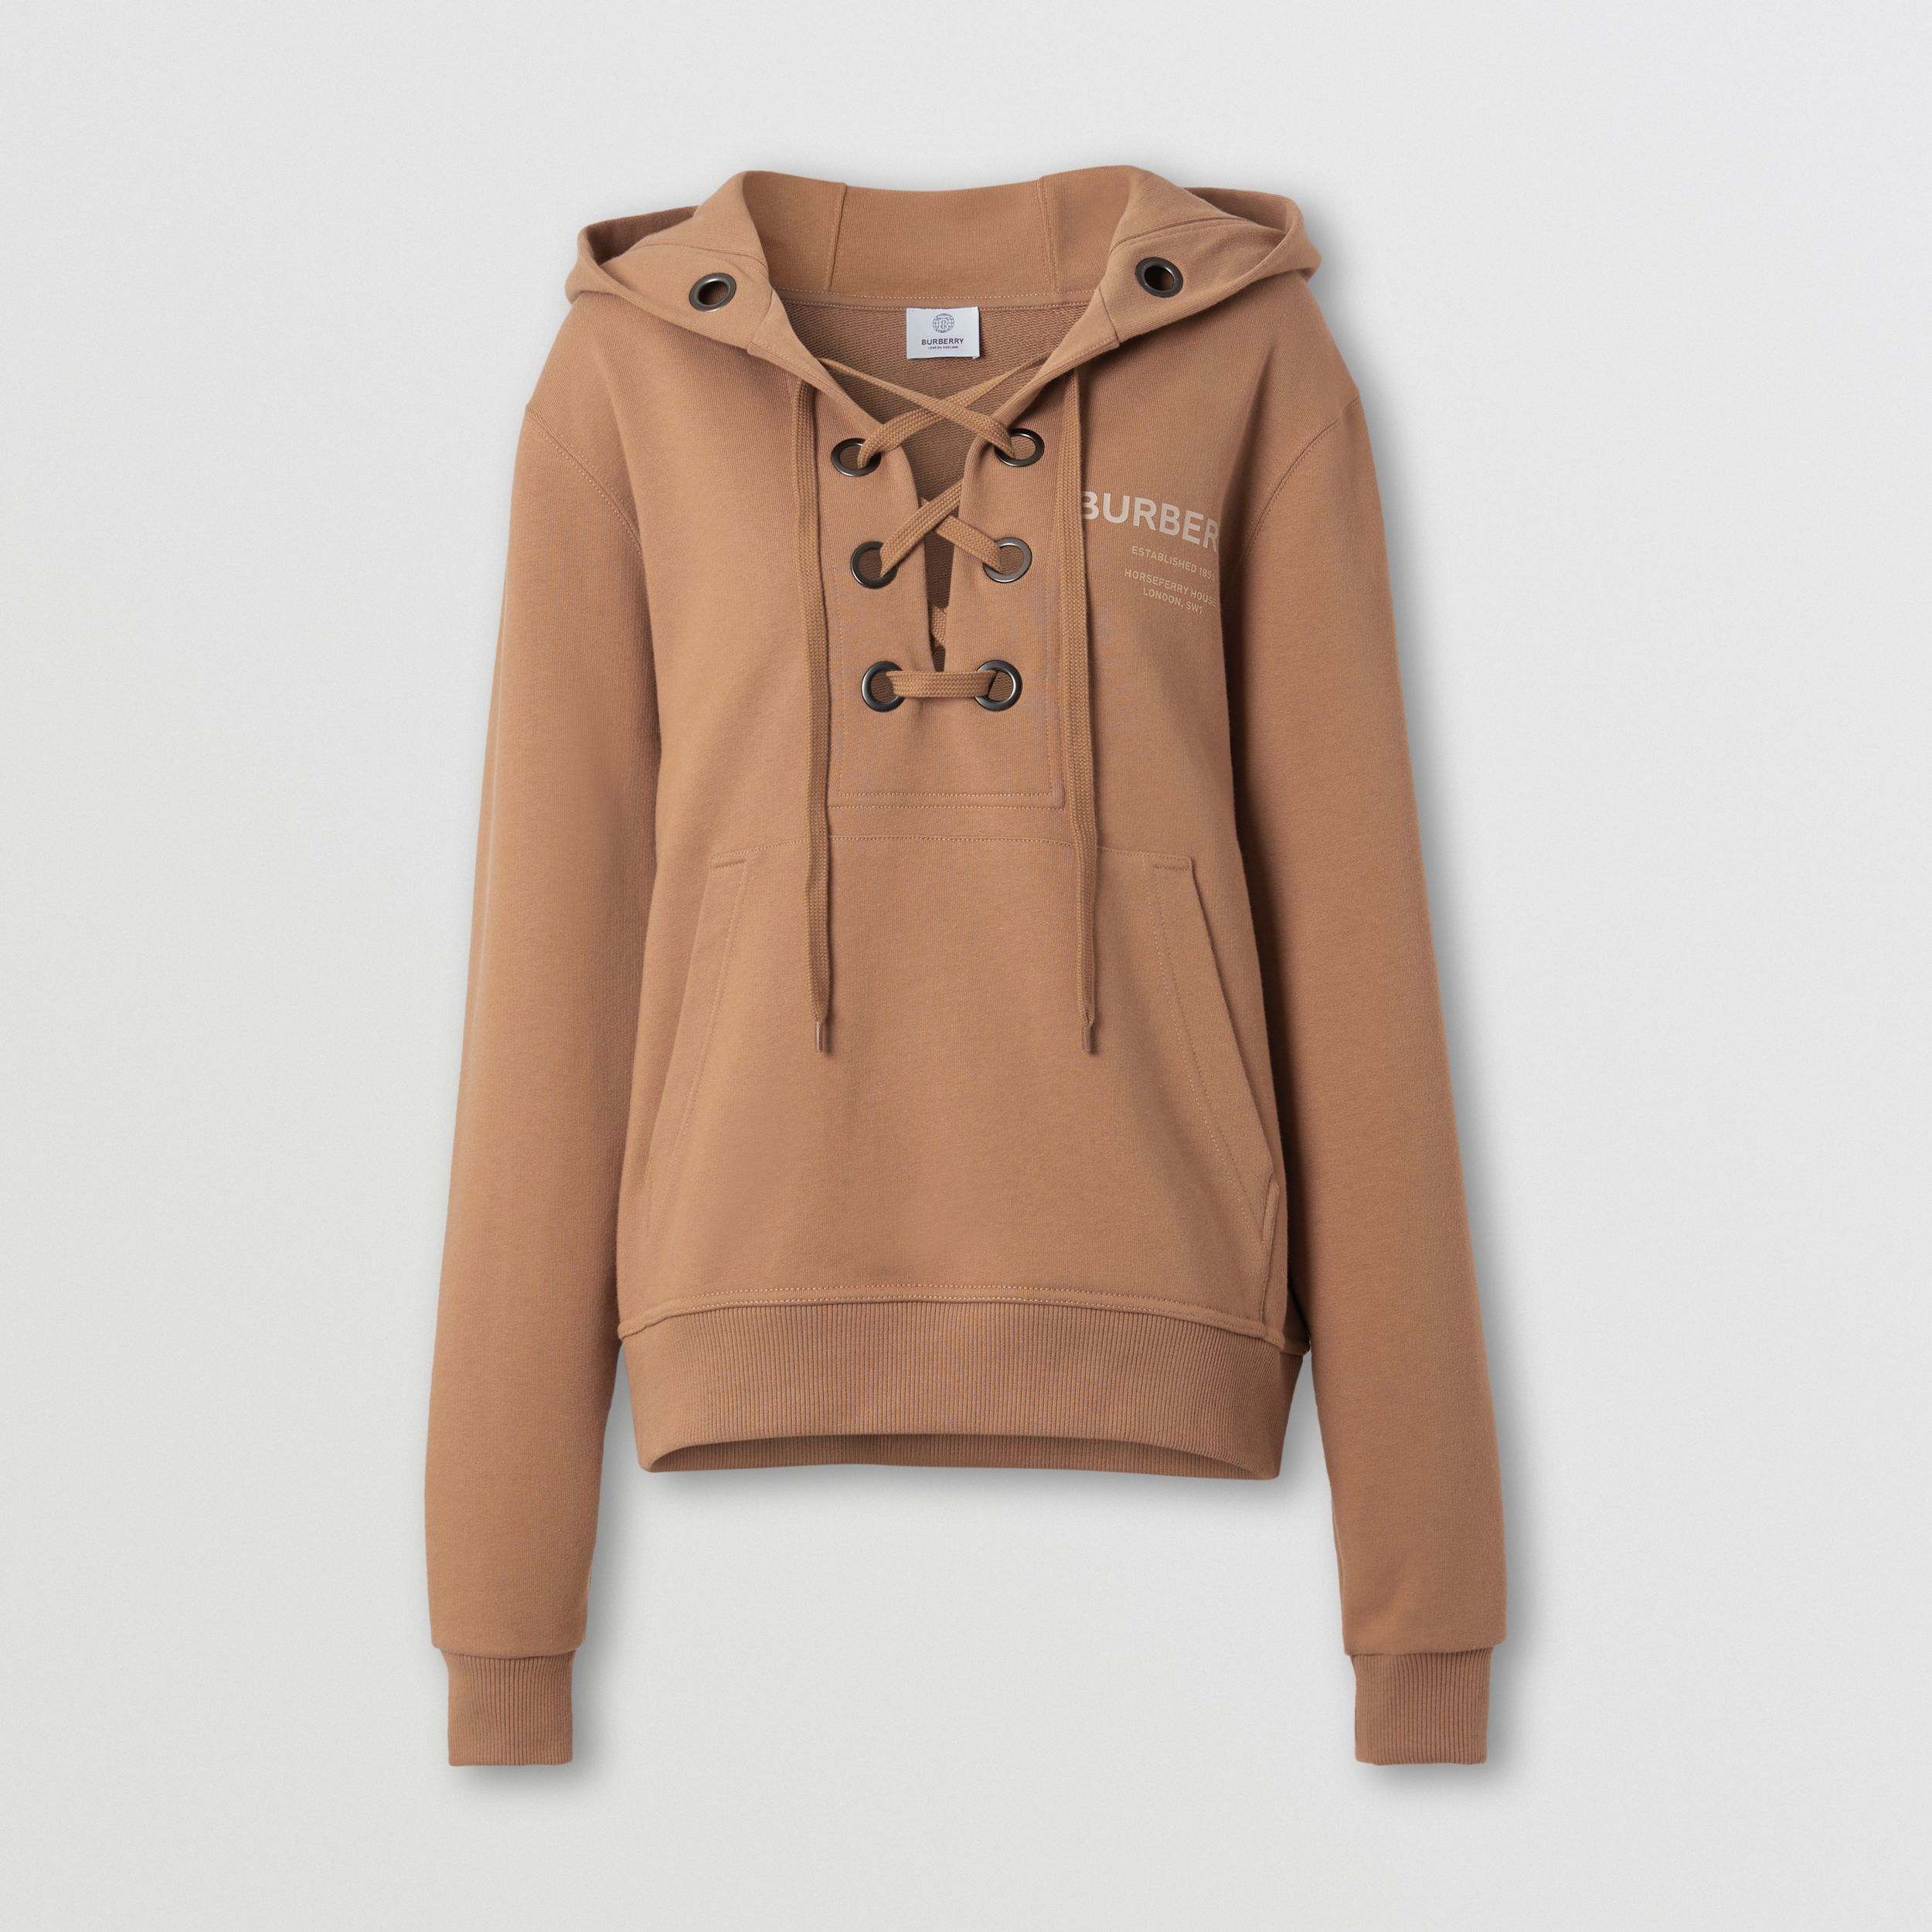 Lace-up Horseferry Print Cotton Oversized Hoodie in Camel - Women | Burberry - 4